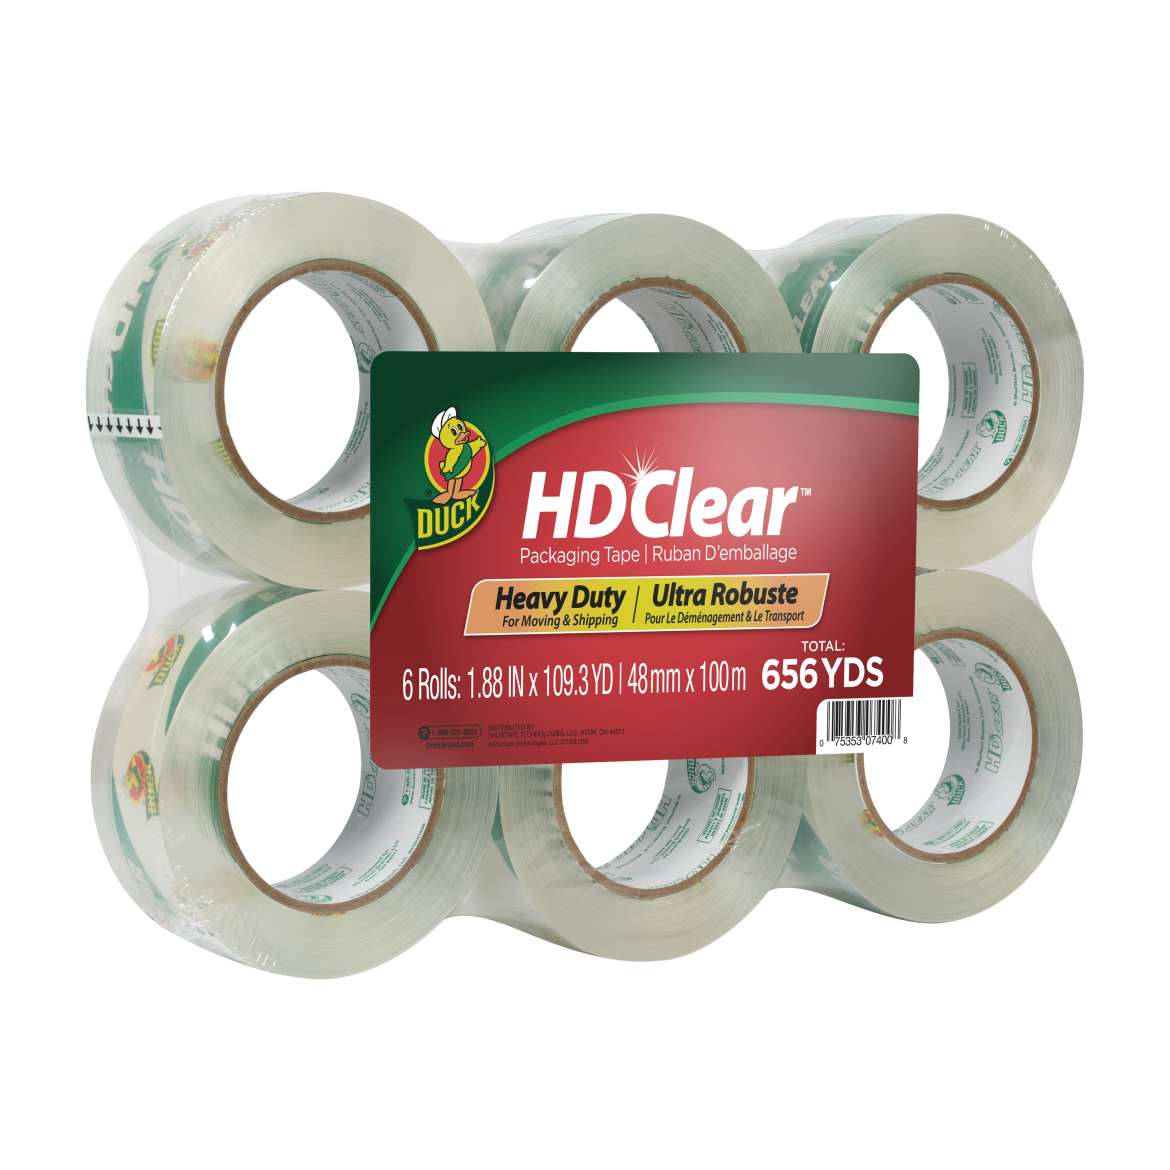 HD Clear™ Heavy Duty Packing Tape Image